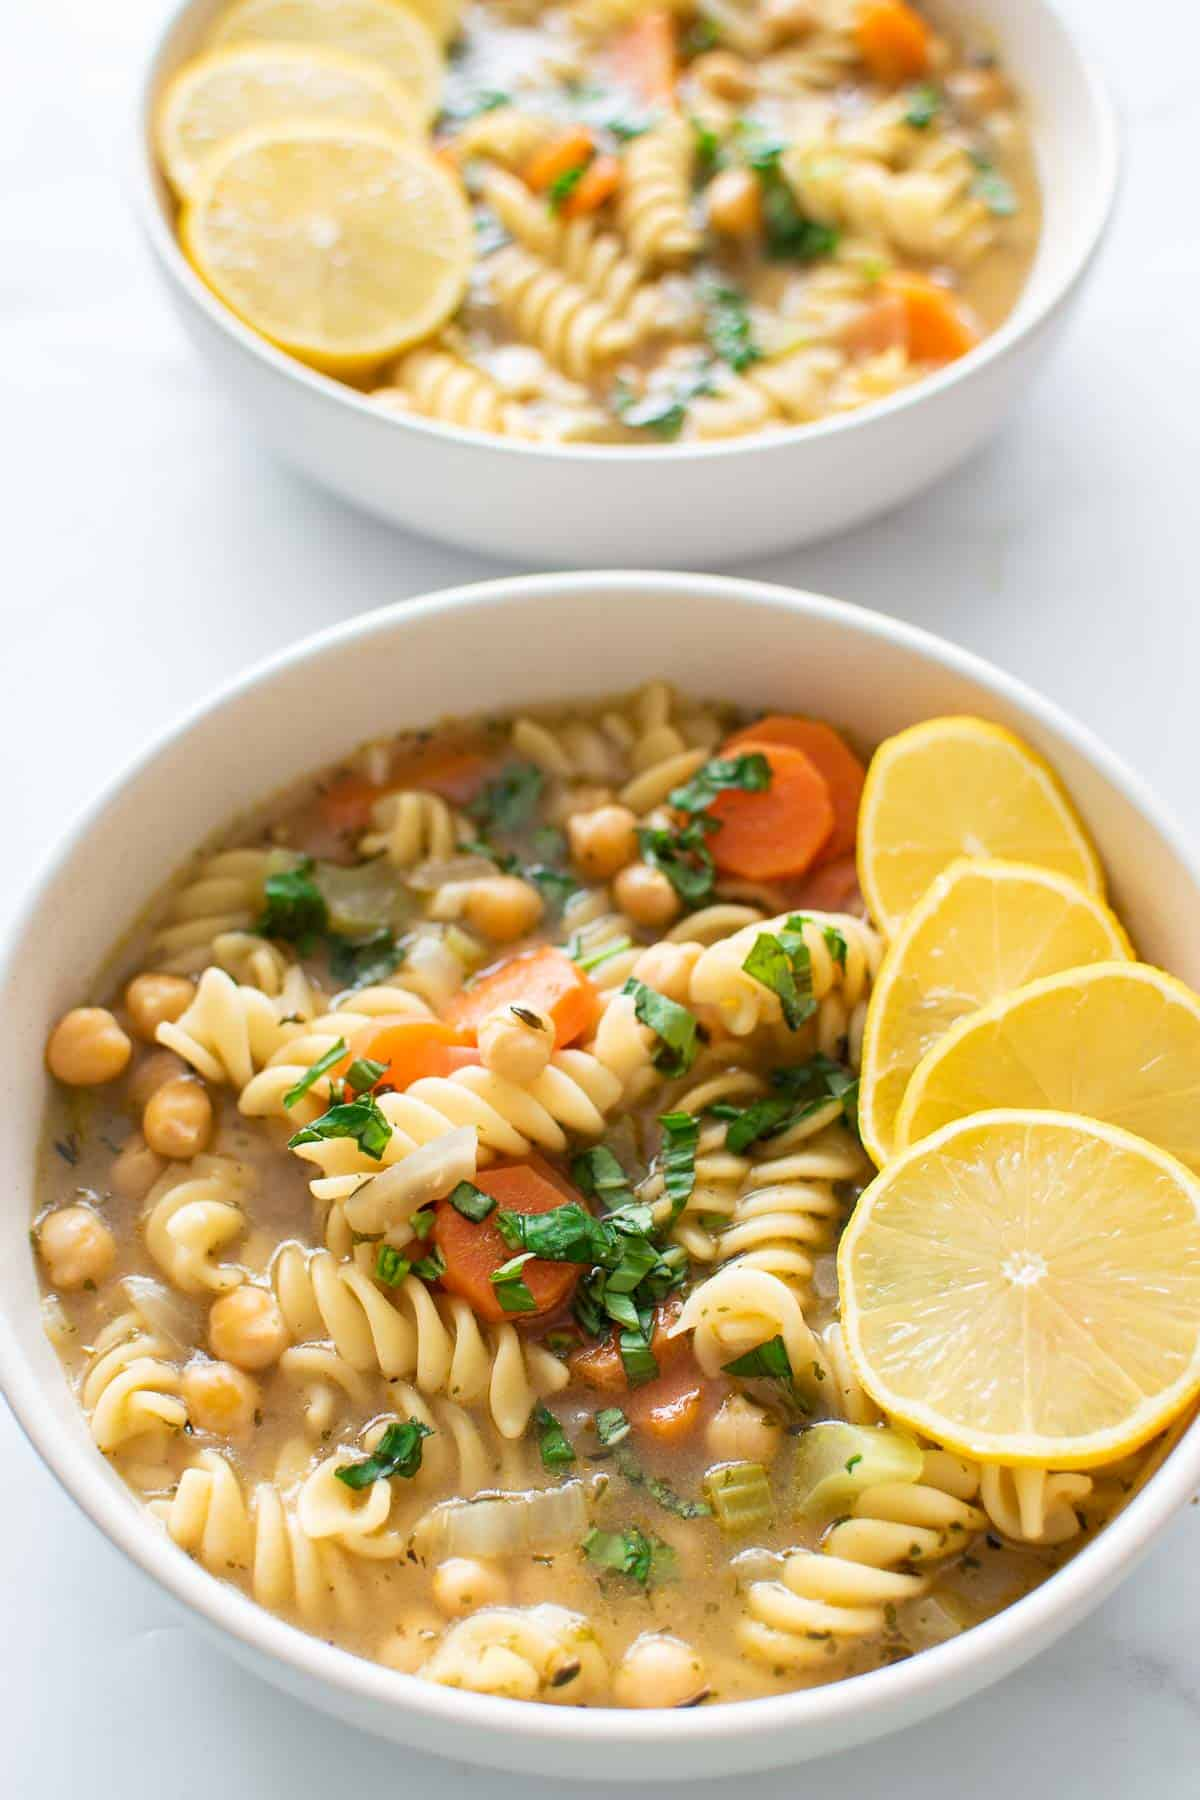 Two bowls of vegetarian soup with chickpeas, noodles and carrots.